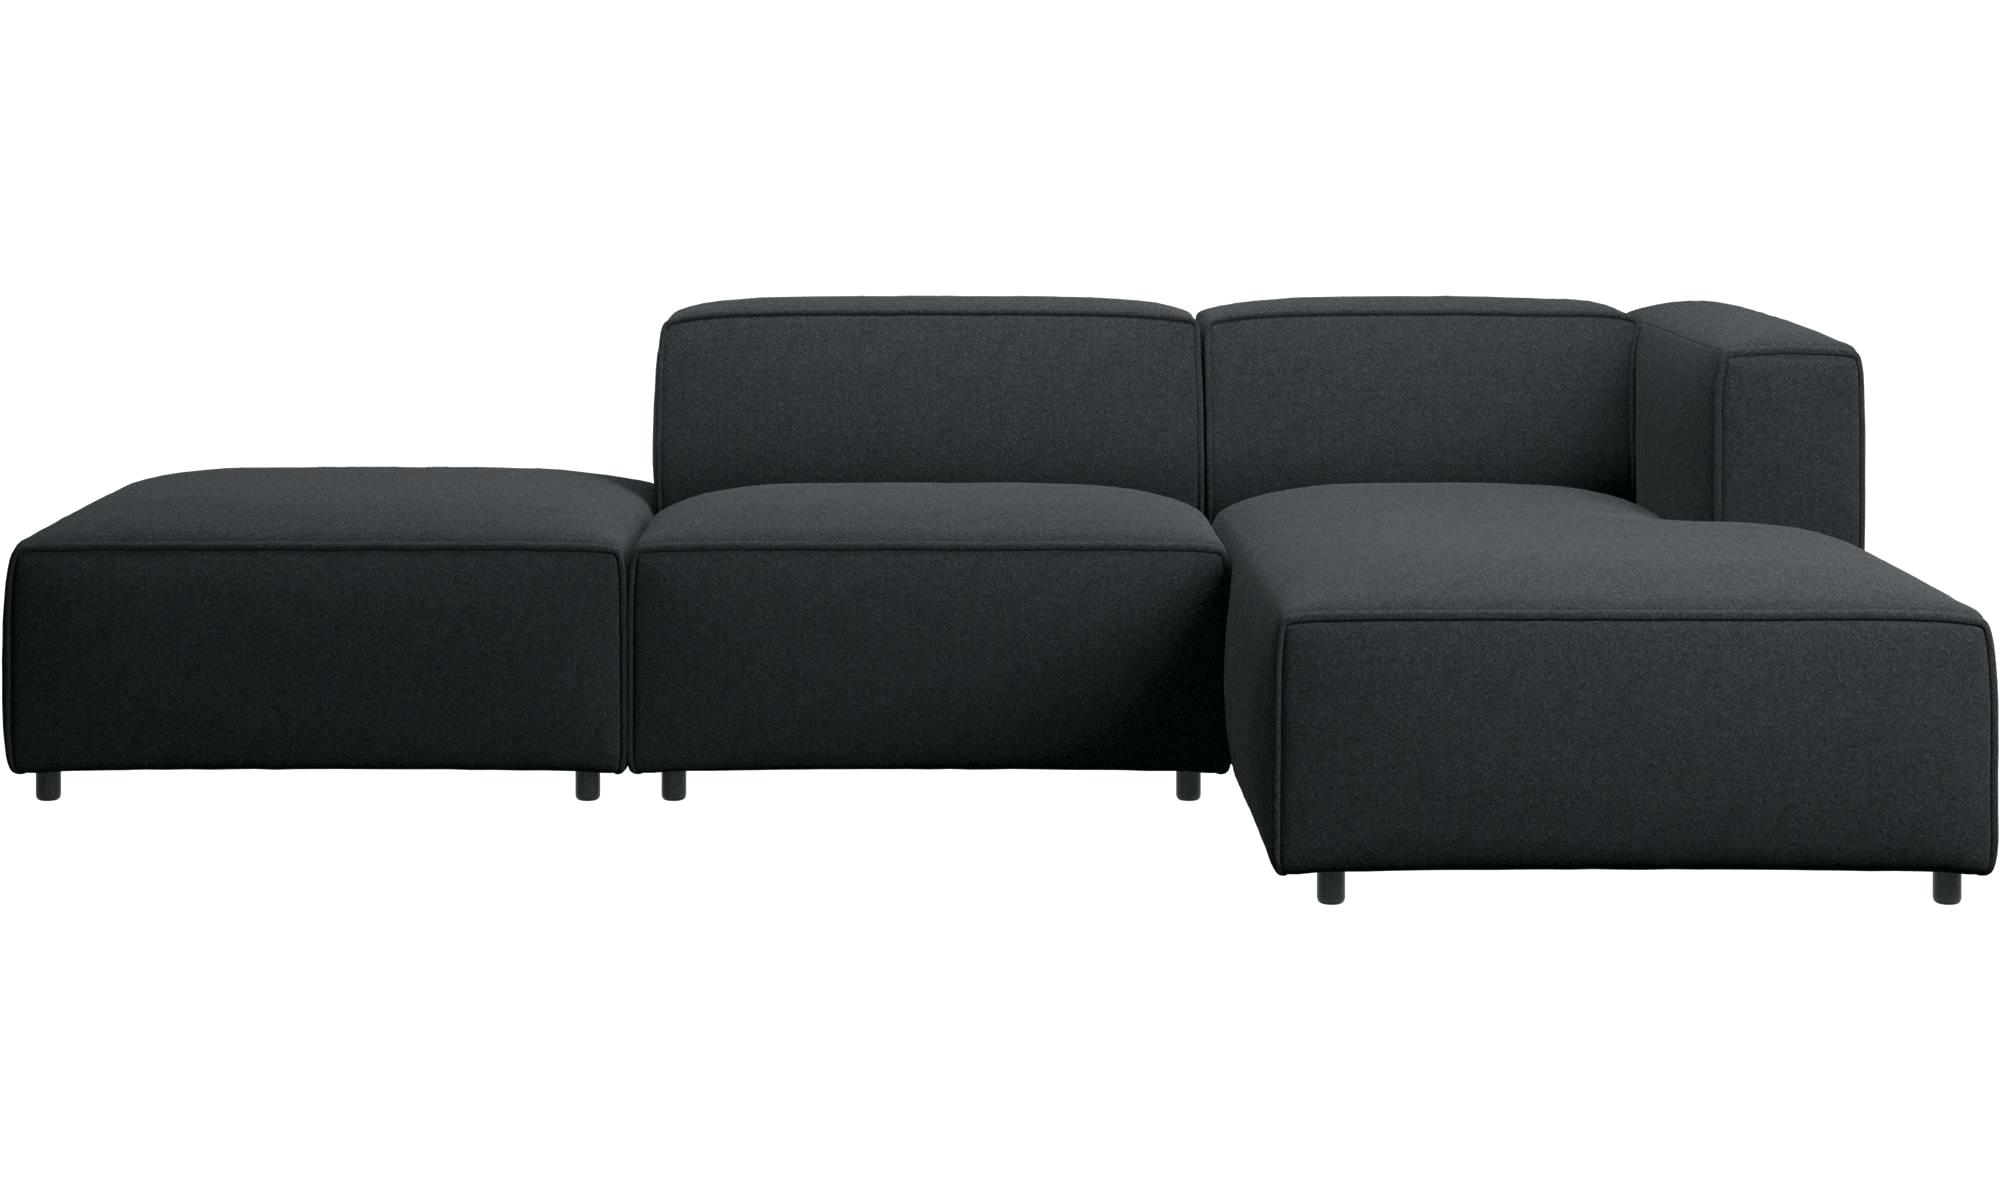 Widely Used Small Modular Sofas Regarding Sofa Modular Chaise Lounge Sofas Carmo With Lounging And Resting (View 14 of 15)